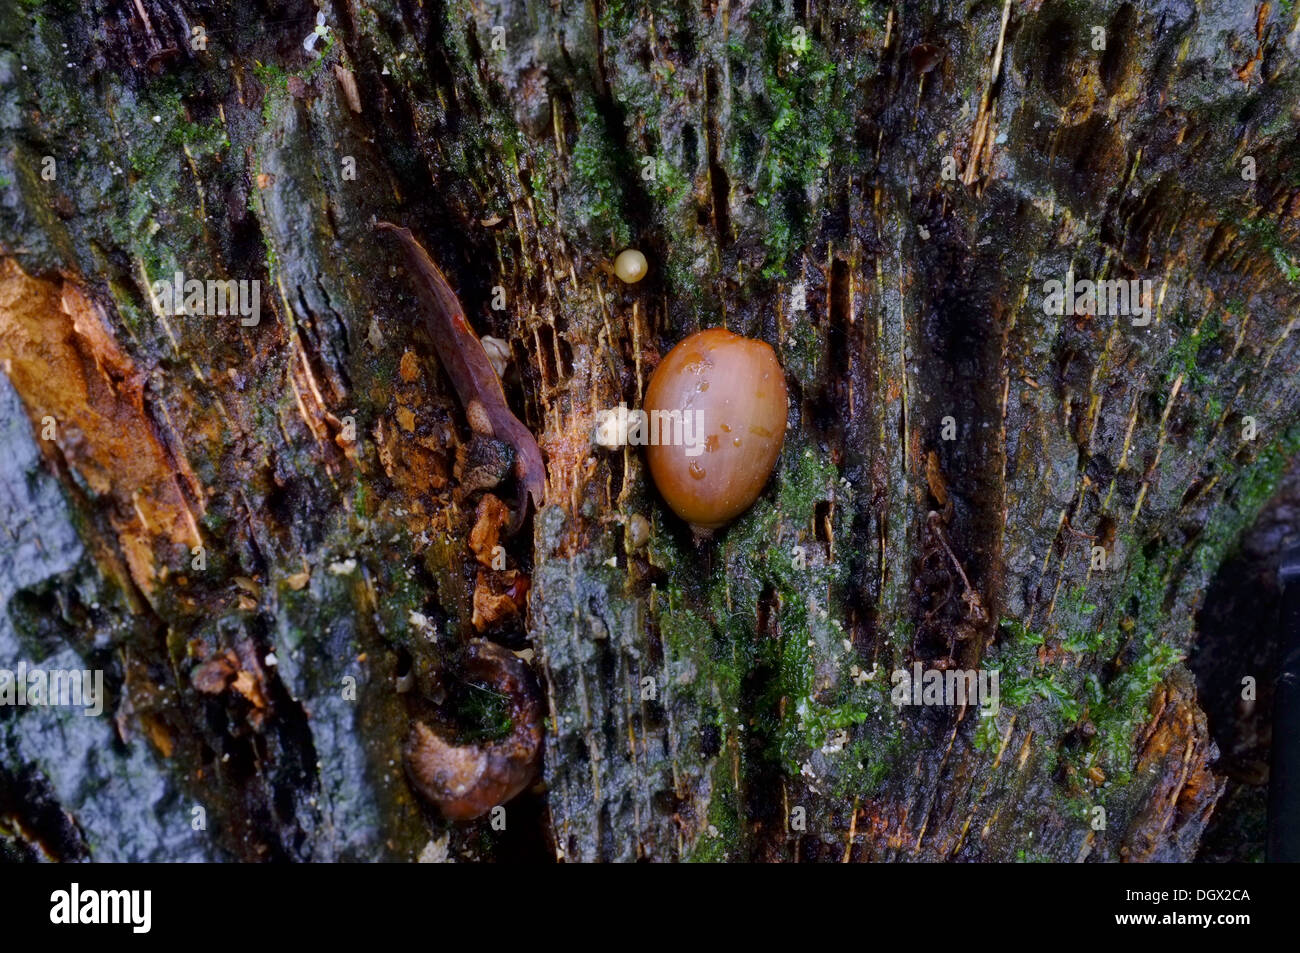 Acorn wedged into a rotting tree stump by squirrel - Stock Image